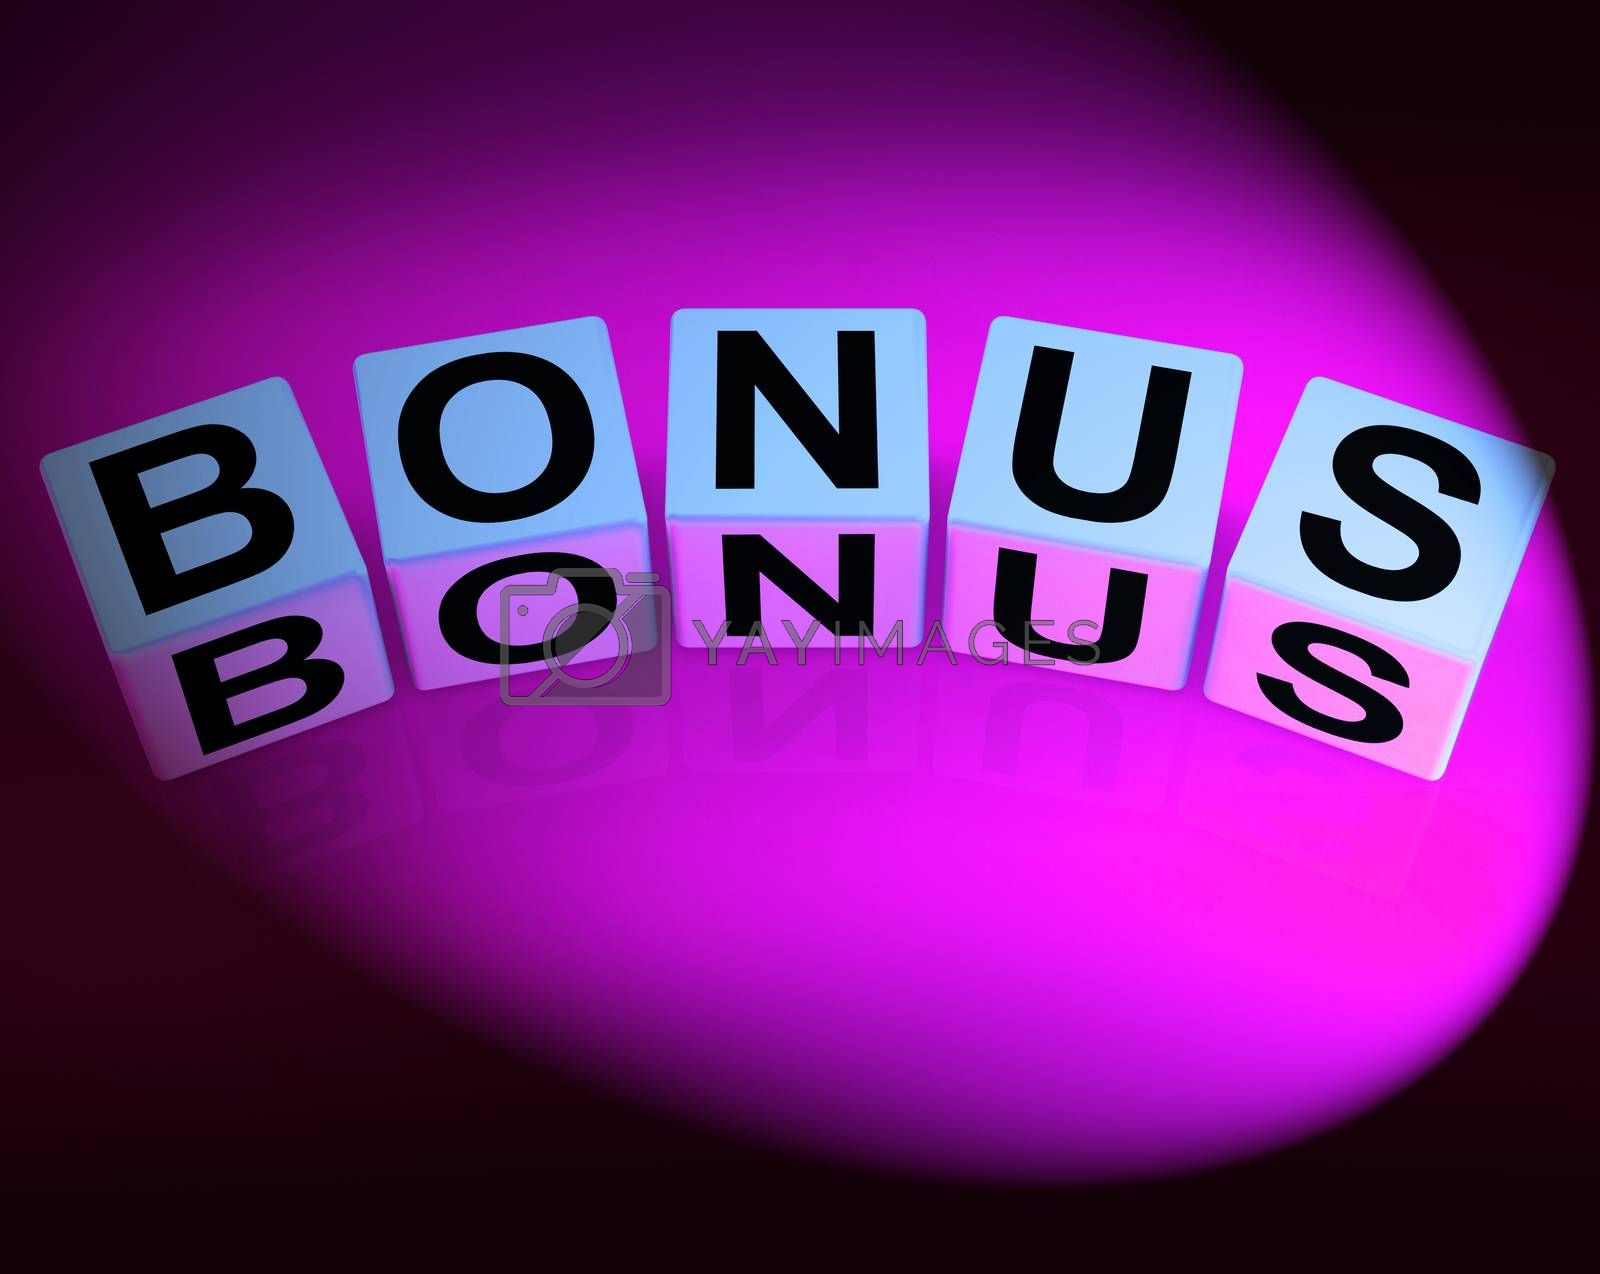 Bonus Dice Indicate Promotional Gratuity Benefits and Bonuses by stuartmiles